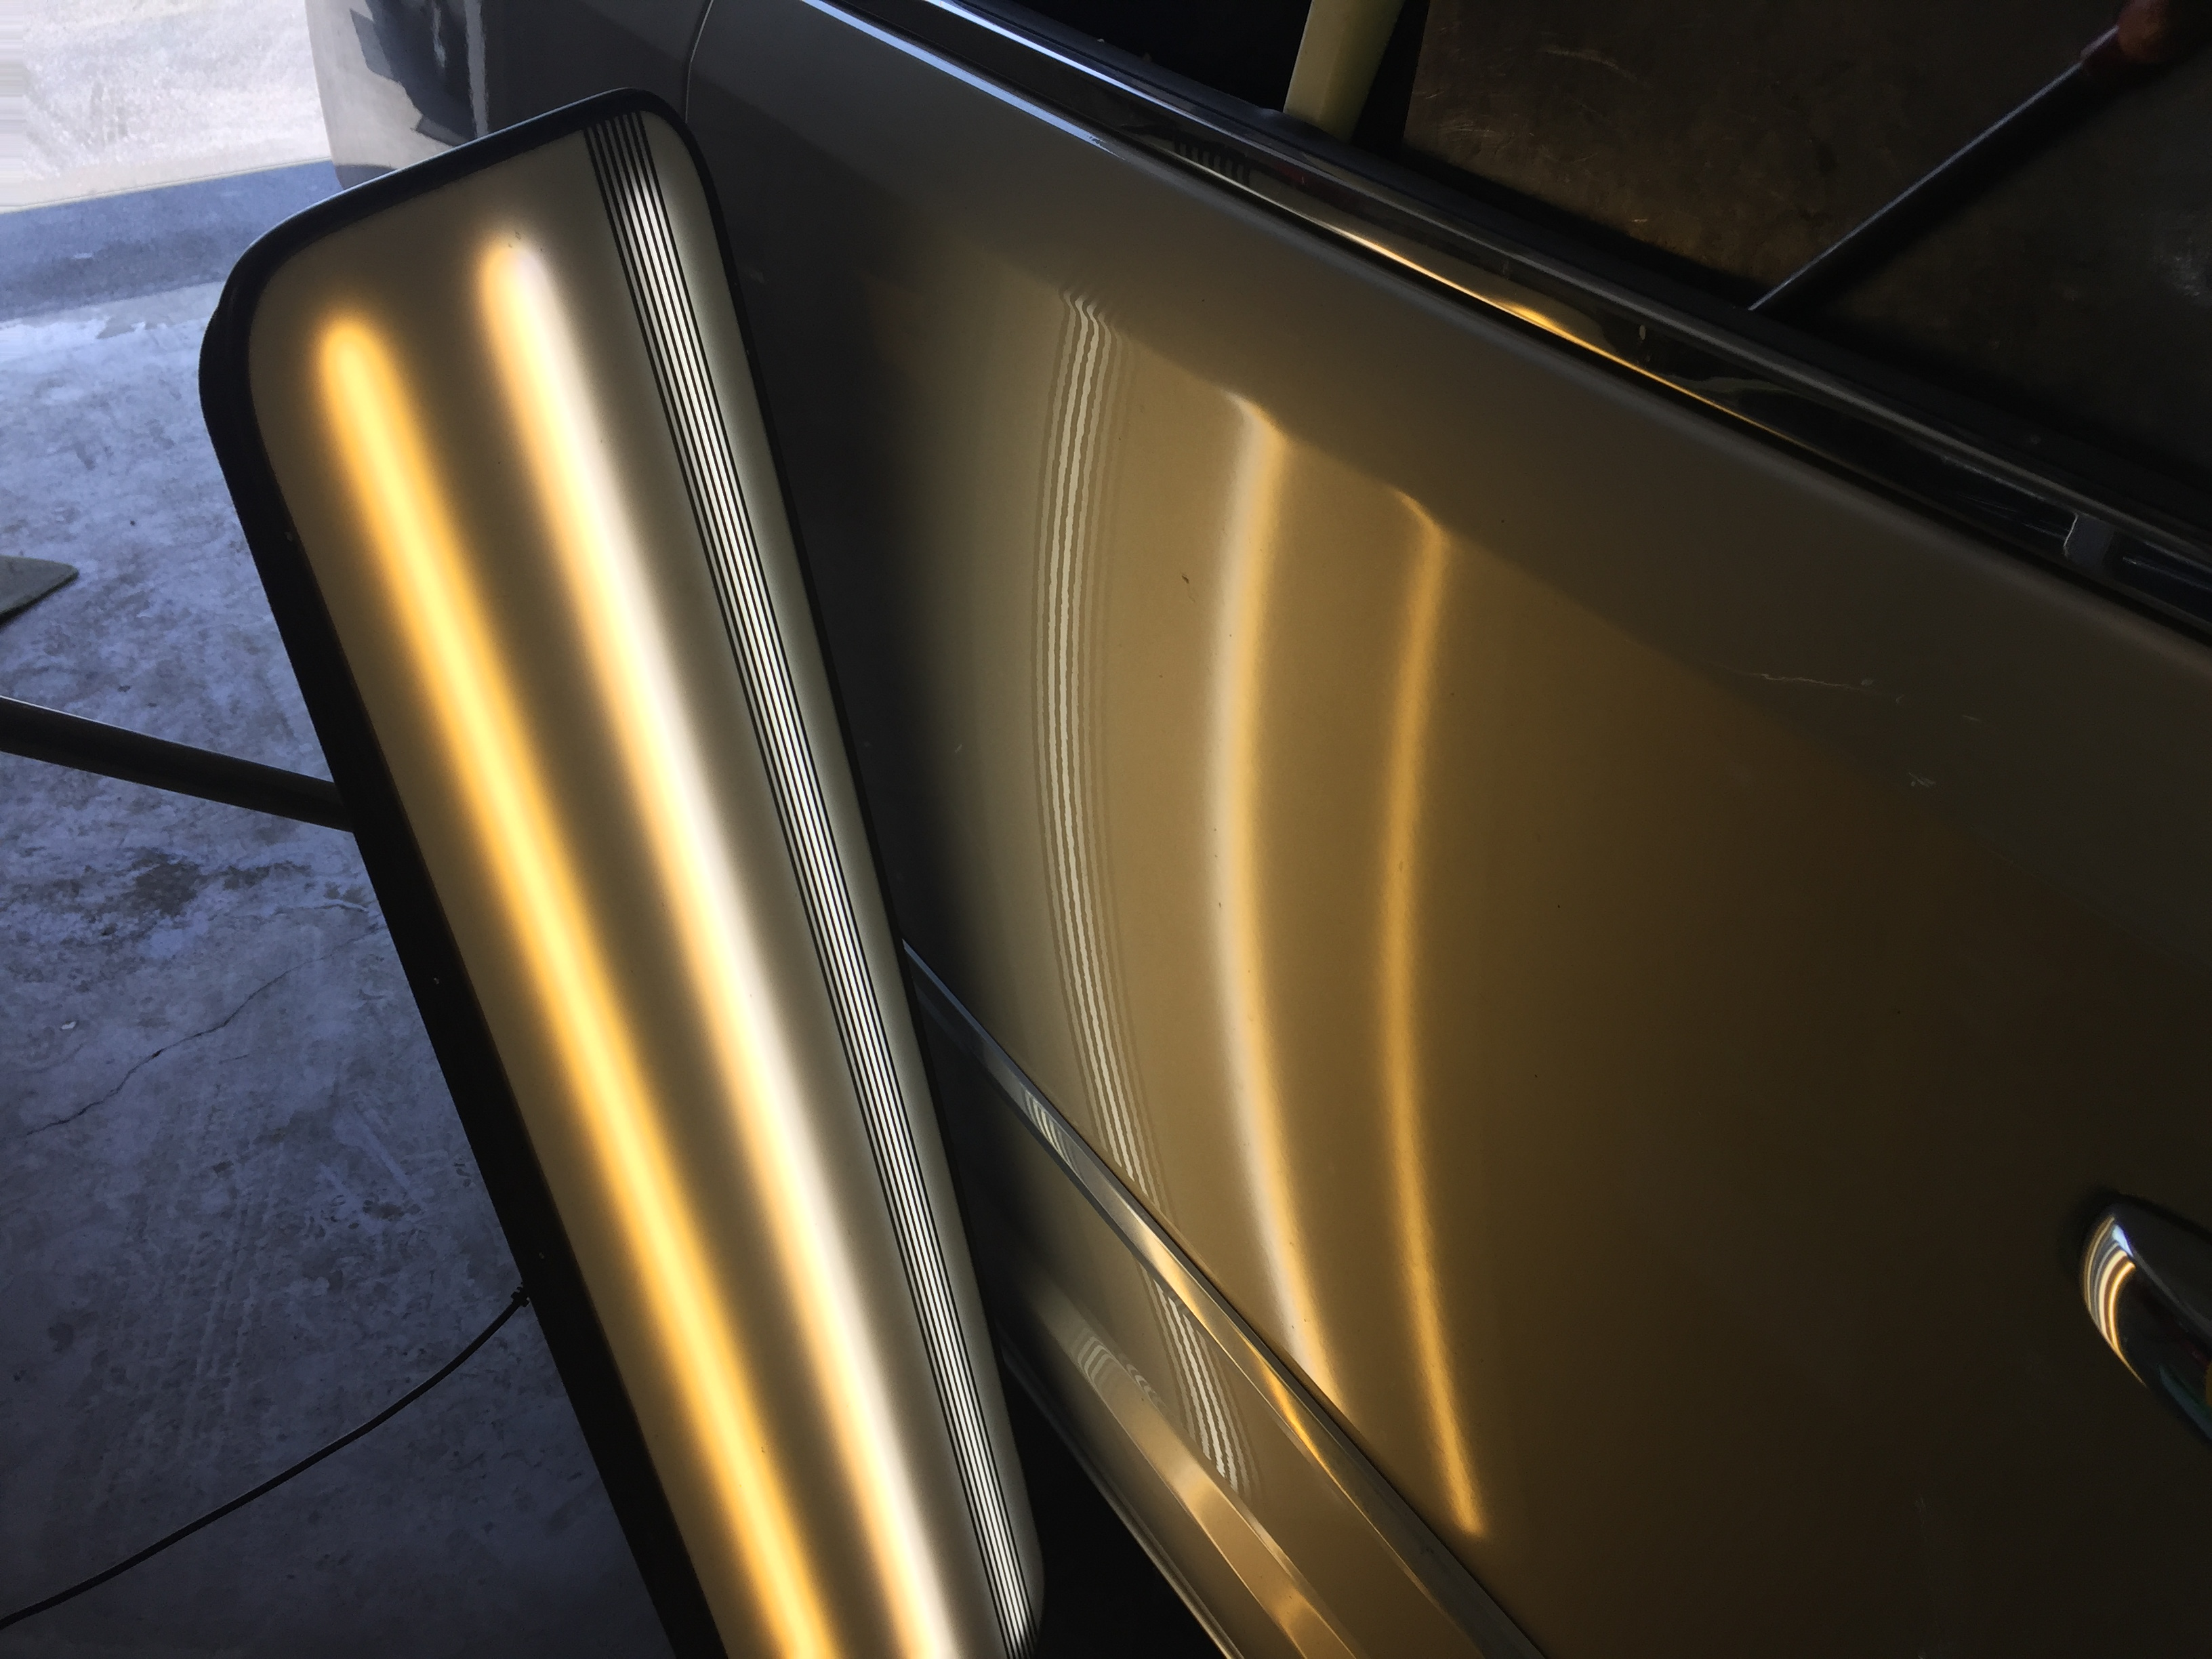 2016 Town & Country Dent Removal, passenger Sliding door, Mobile Dent Repair Springfield, IL http://217dent.com